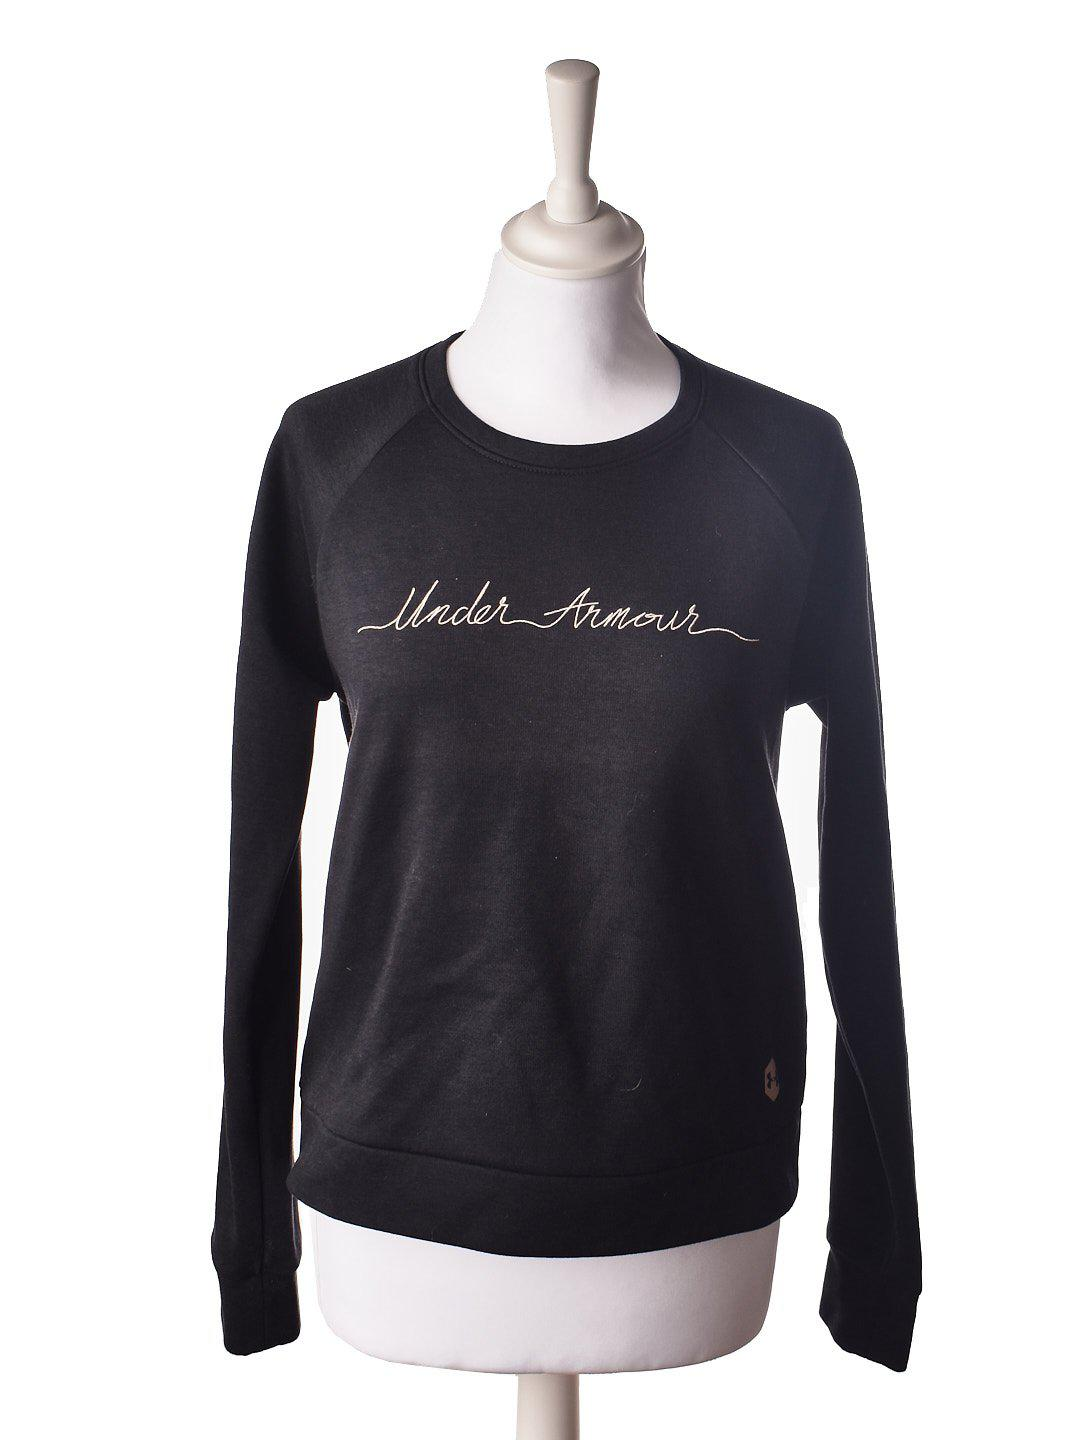 Sweatshirt fra Under Amour